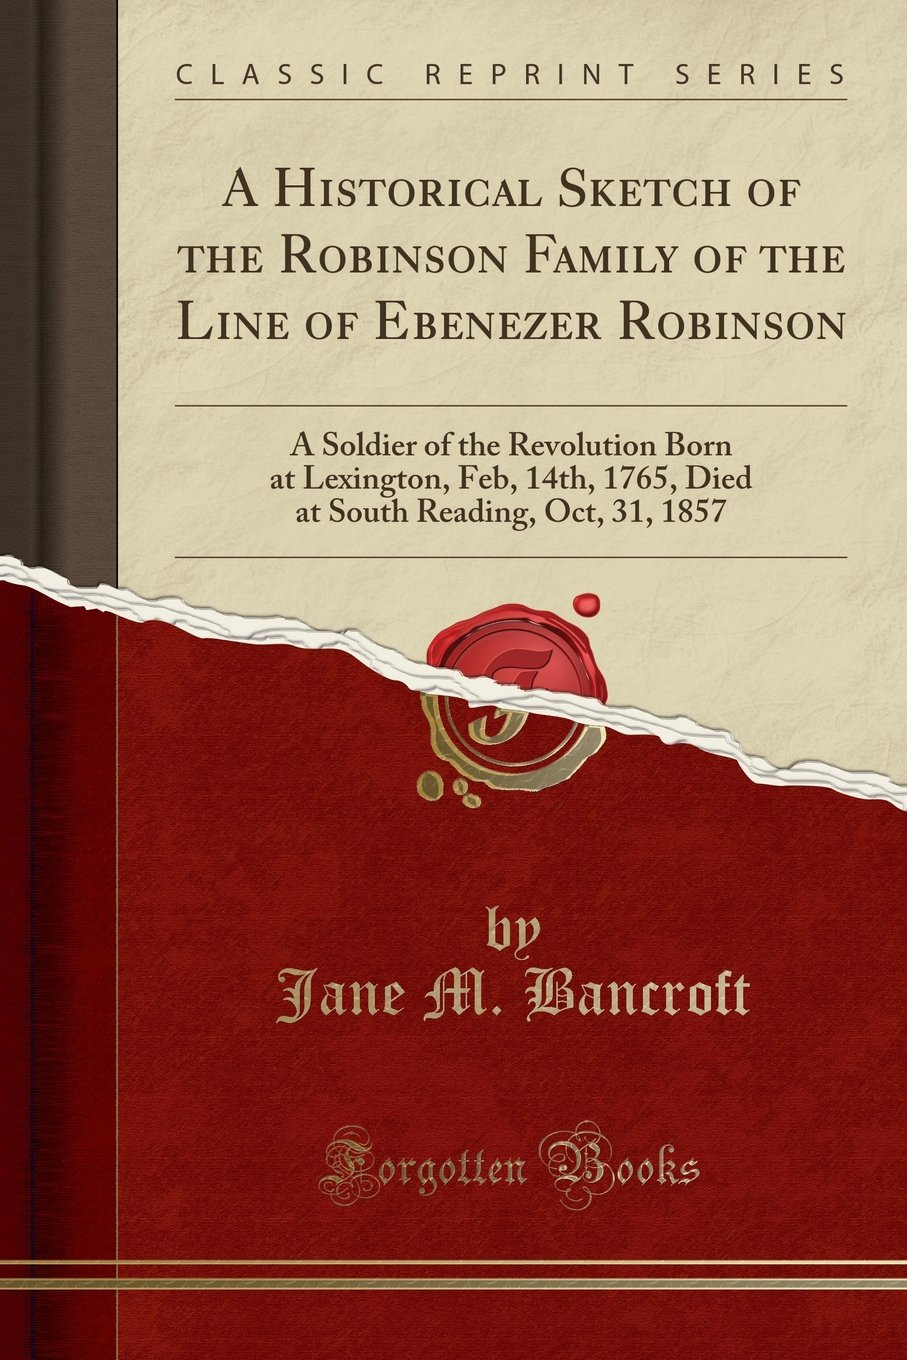 Download A Historical Sketch of the Robinson Family of the Line of Ebenezer Robinson: A Soldier of the Revolution Born at Lexington, Feb, 14th, 1765, Died at South Reading, Oct, 31, 1857 (Classic Reprint) PDF